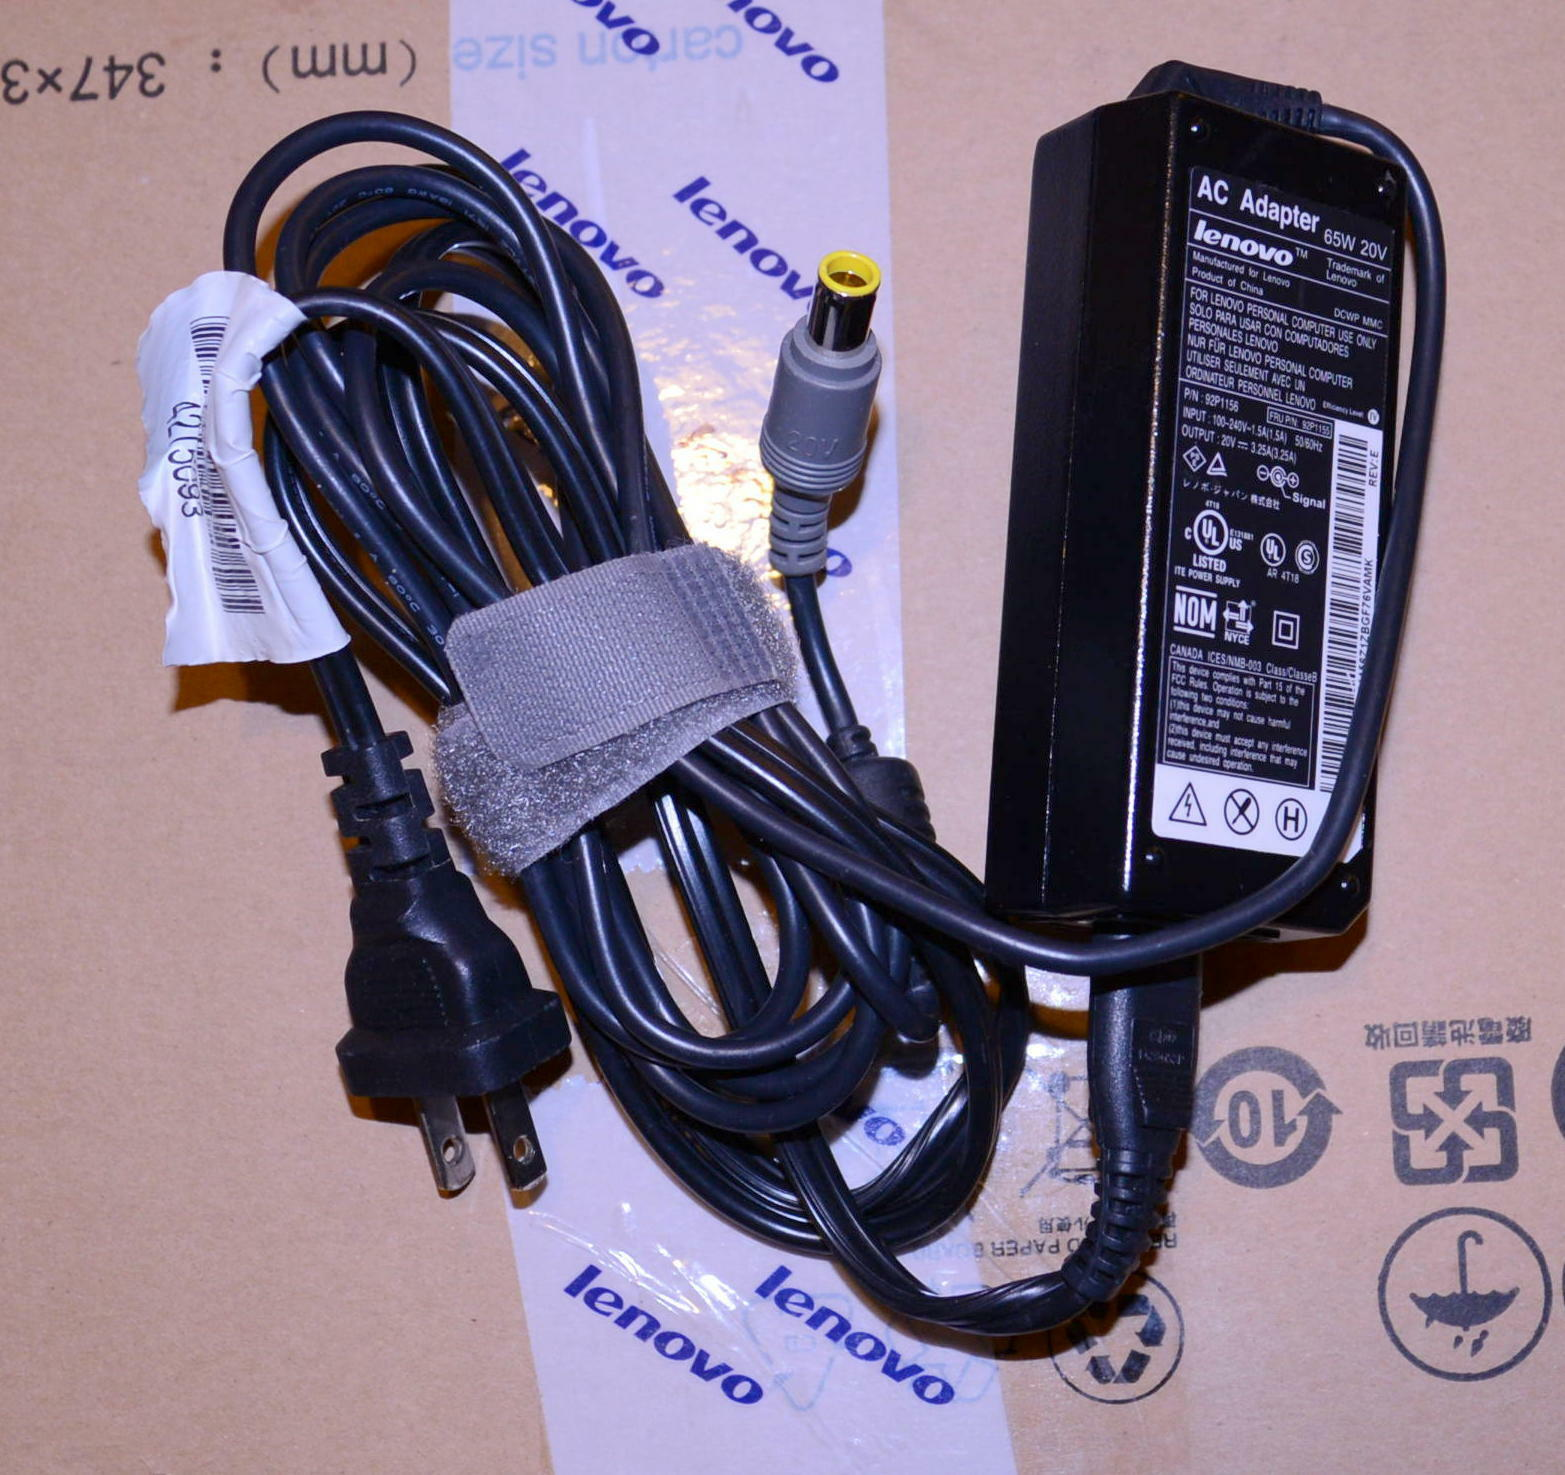 Lenovo Thinkpad 65w Ac Adapter Laptop Charger T420 T410